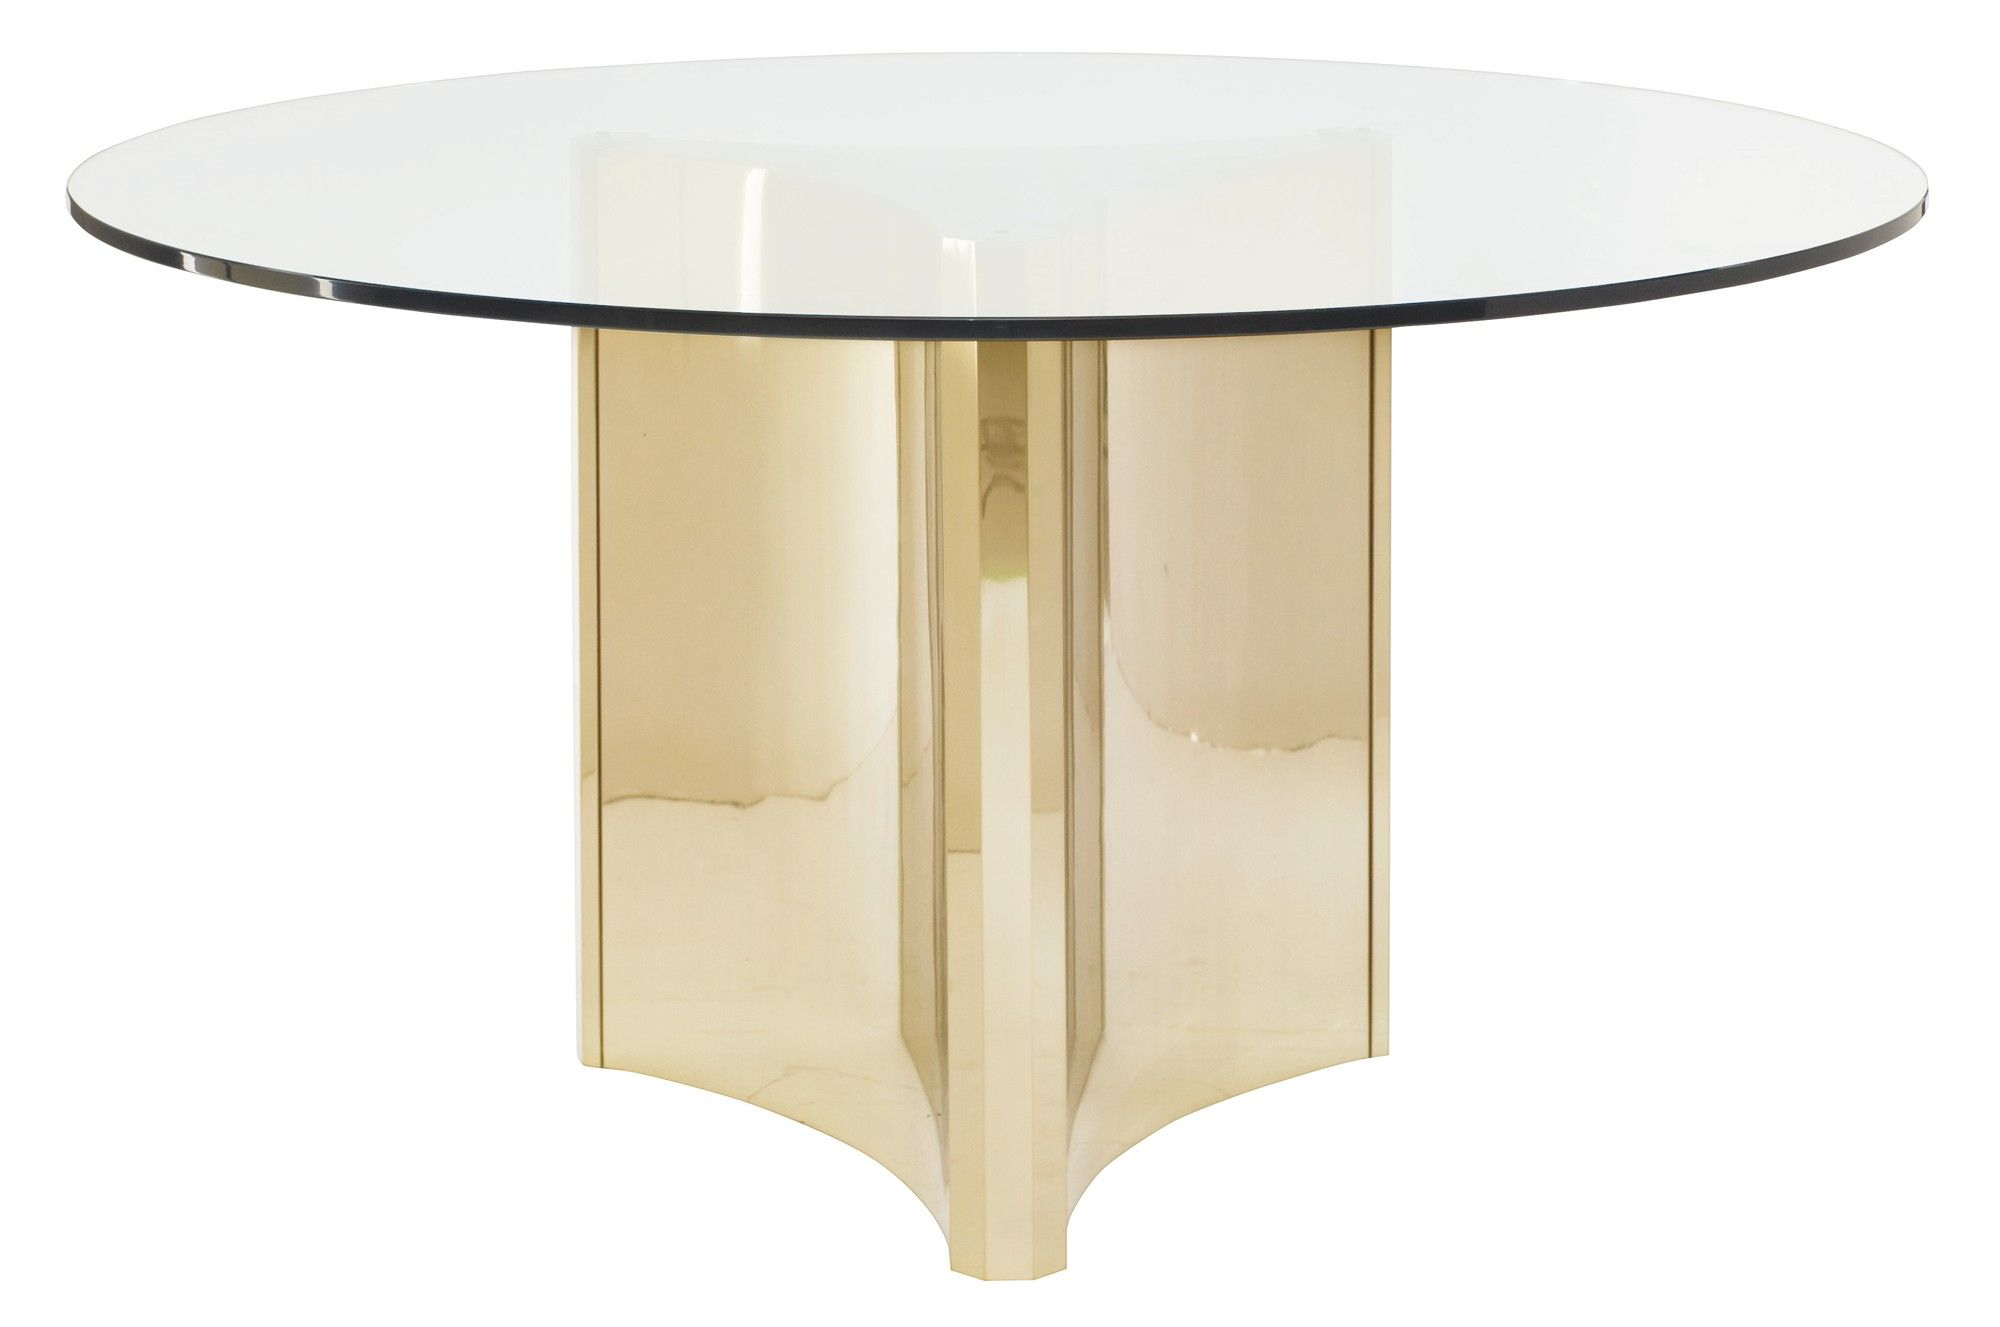 Round glass table top view image result for table bases  items for fibre glas  pinterest